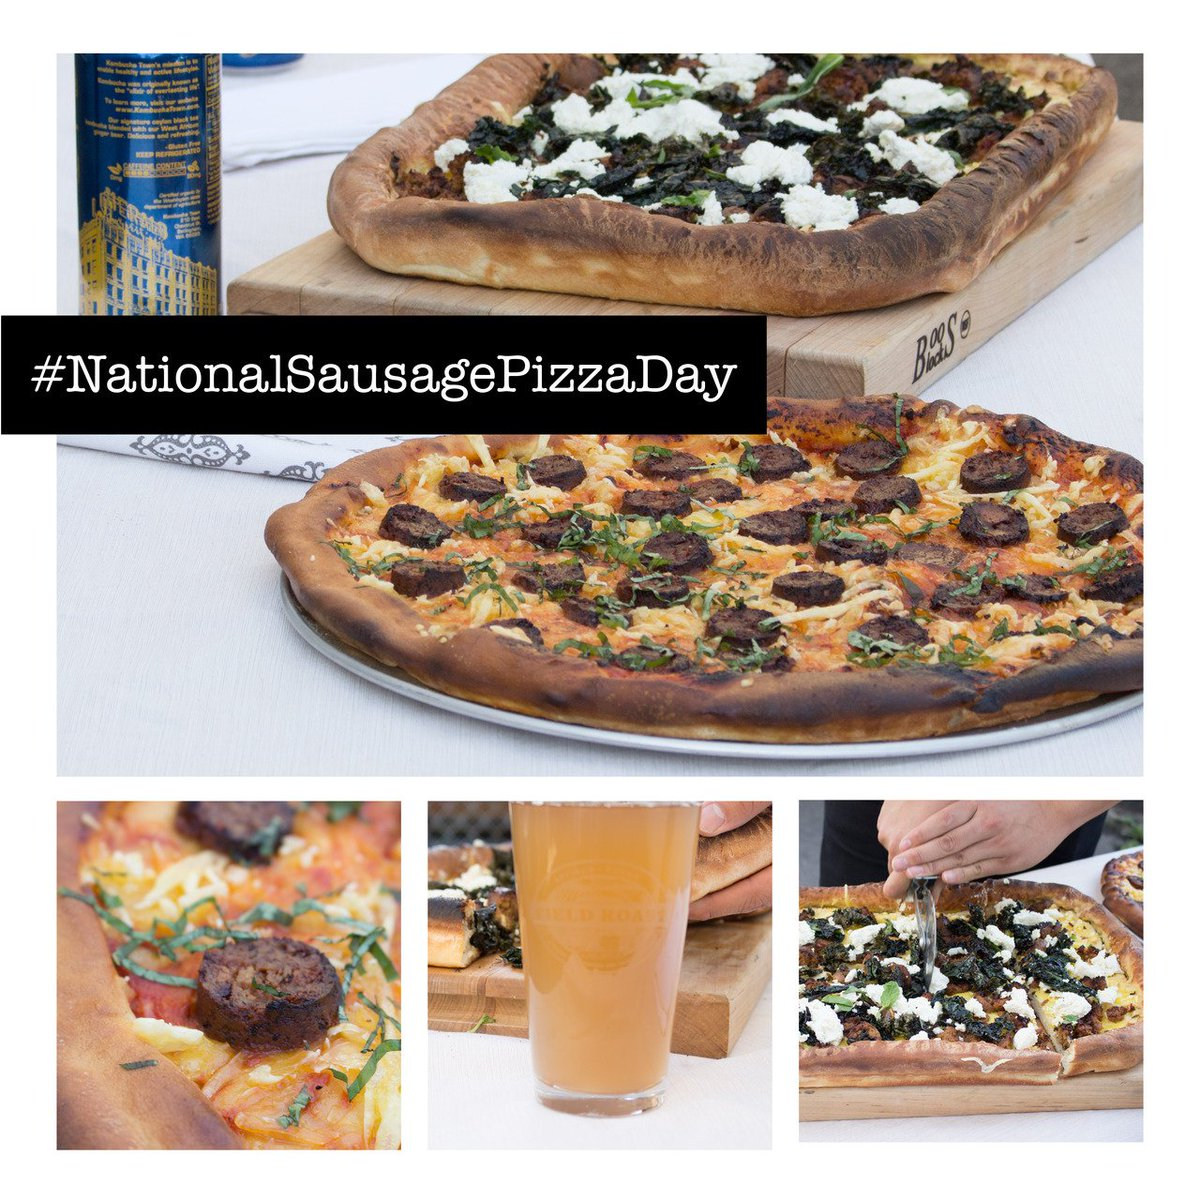 We made two pizzas for #NationalSausagePizzaDay with crumbled Field Roast Italian Sausage and sliced Field Roast Mexican Chipotle Sausage. <br>http://pic.twitter.com/aylX5V9GkJ